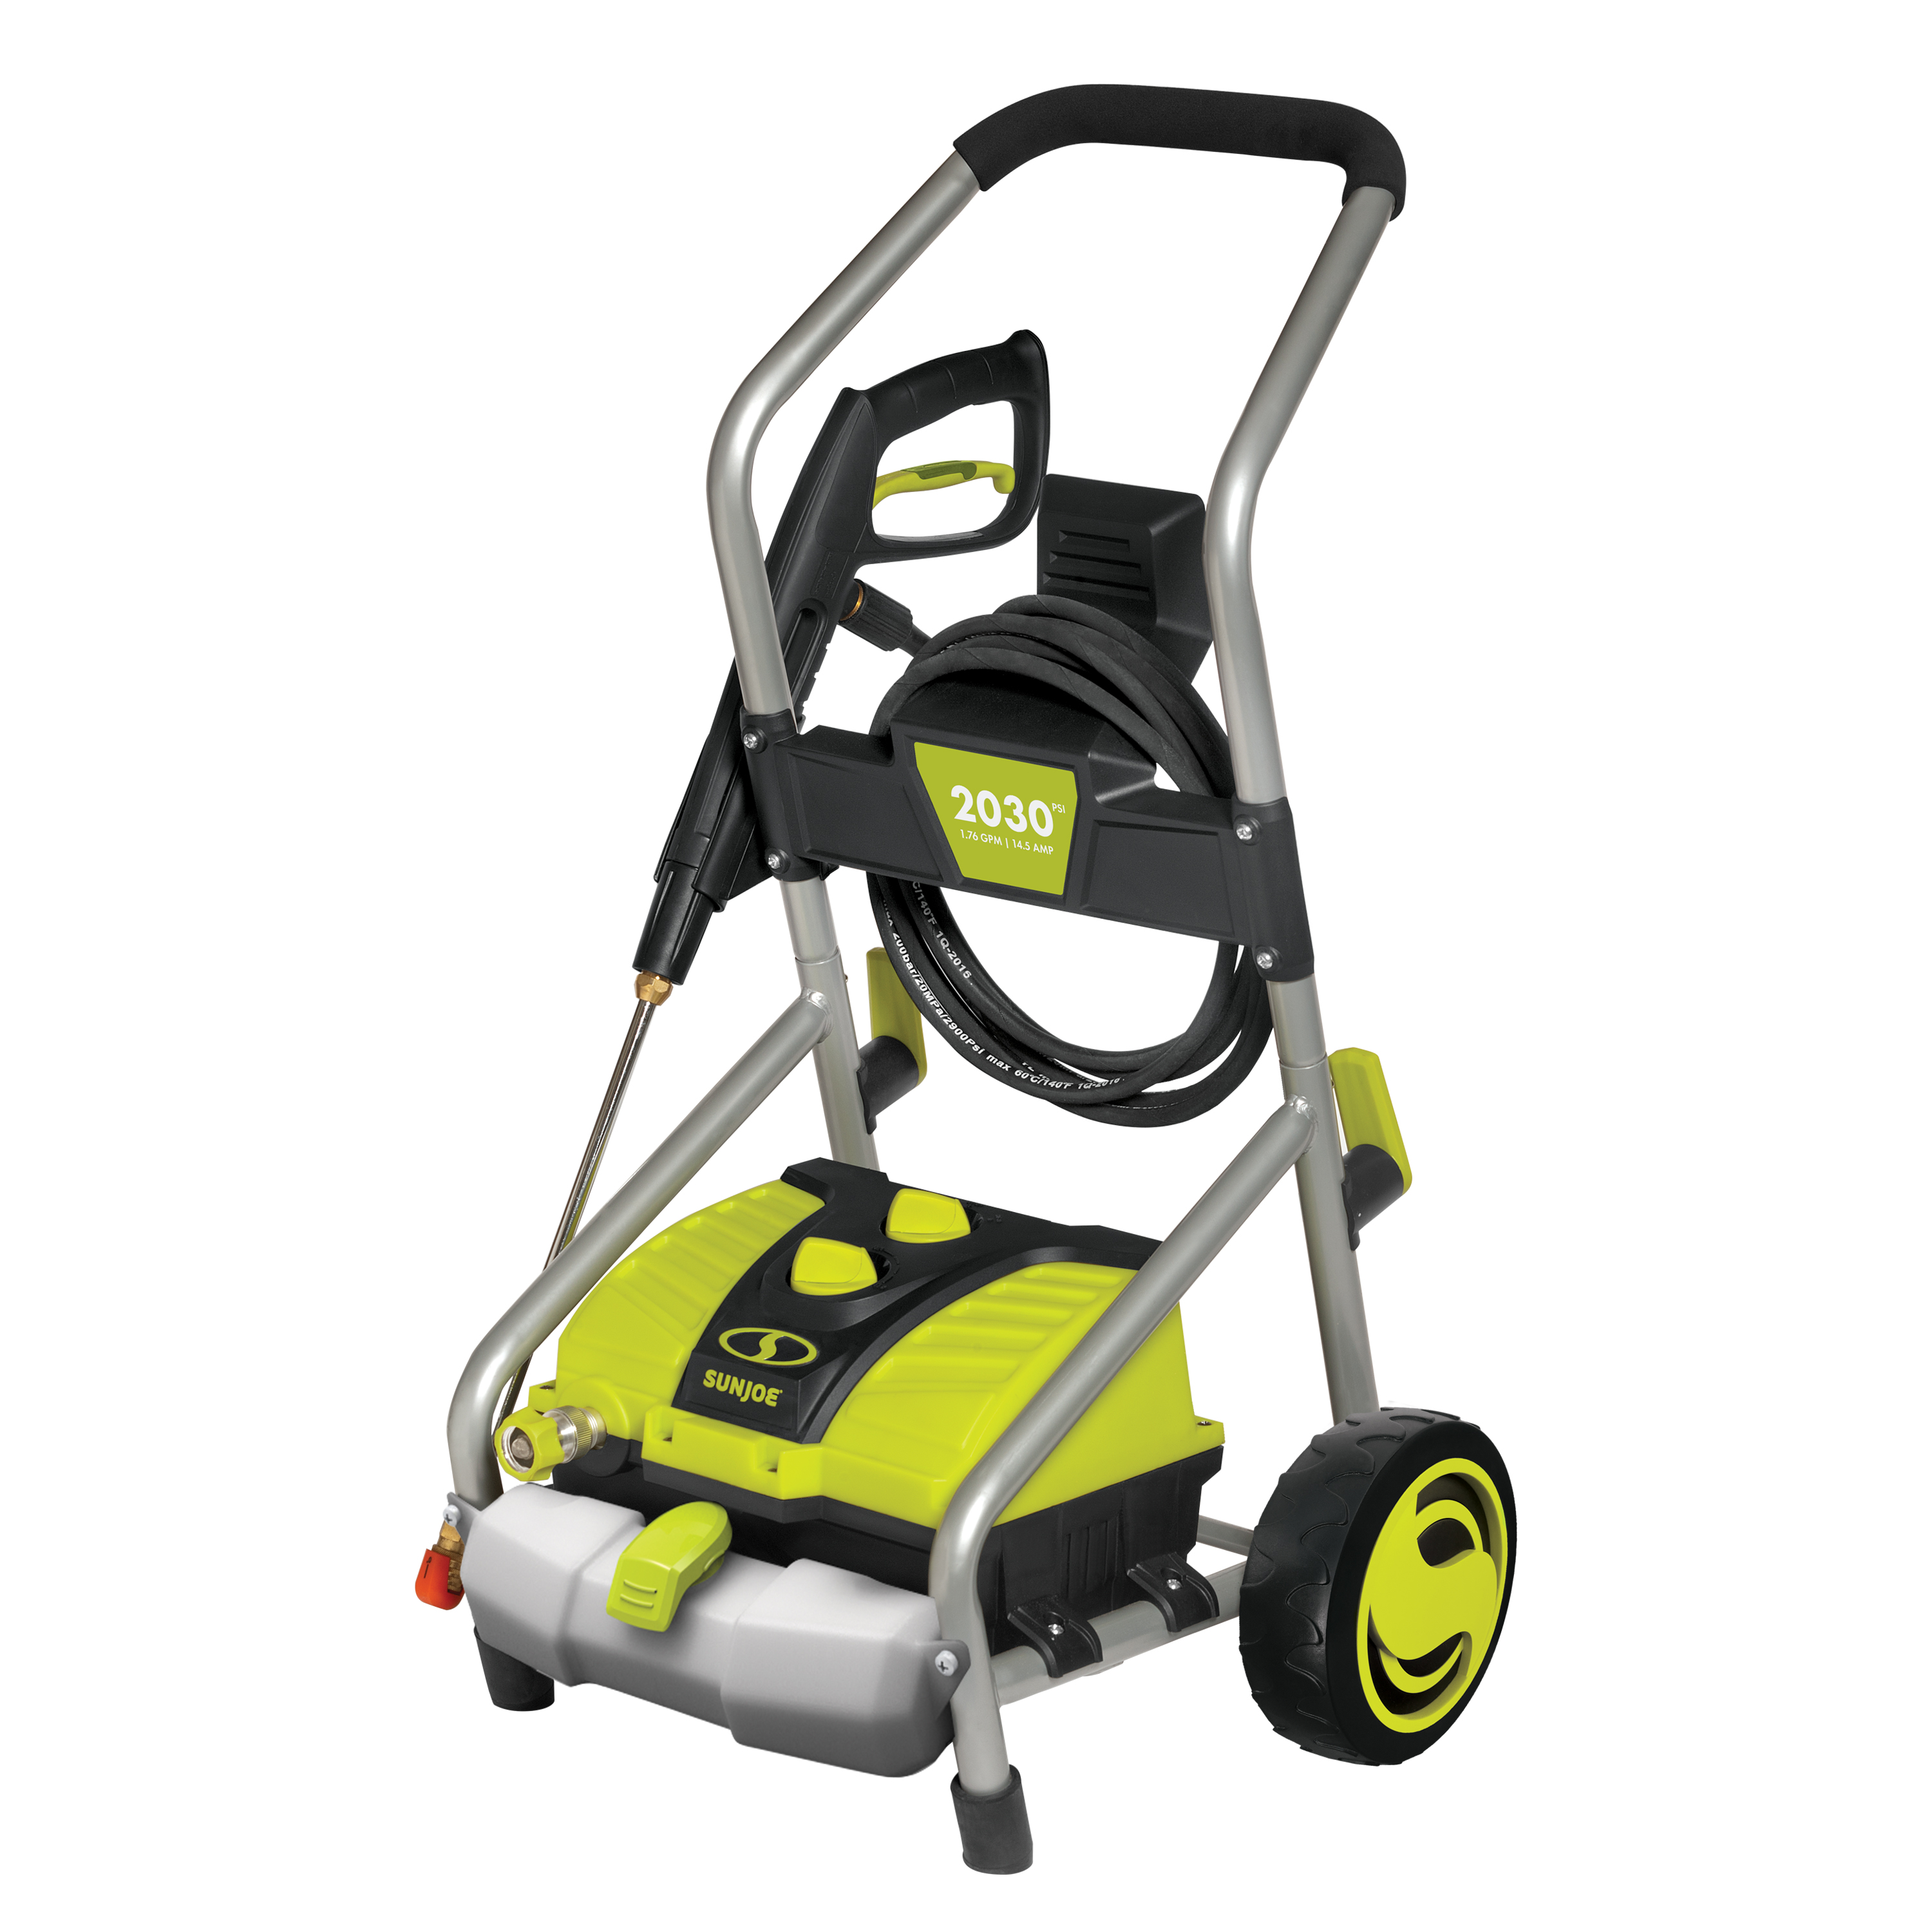 Sun Joe SPX4000 Electric Pressure Washer | 2030 PSI · 1.76 GPM · 14.5-Amp | Pressure Select Technology